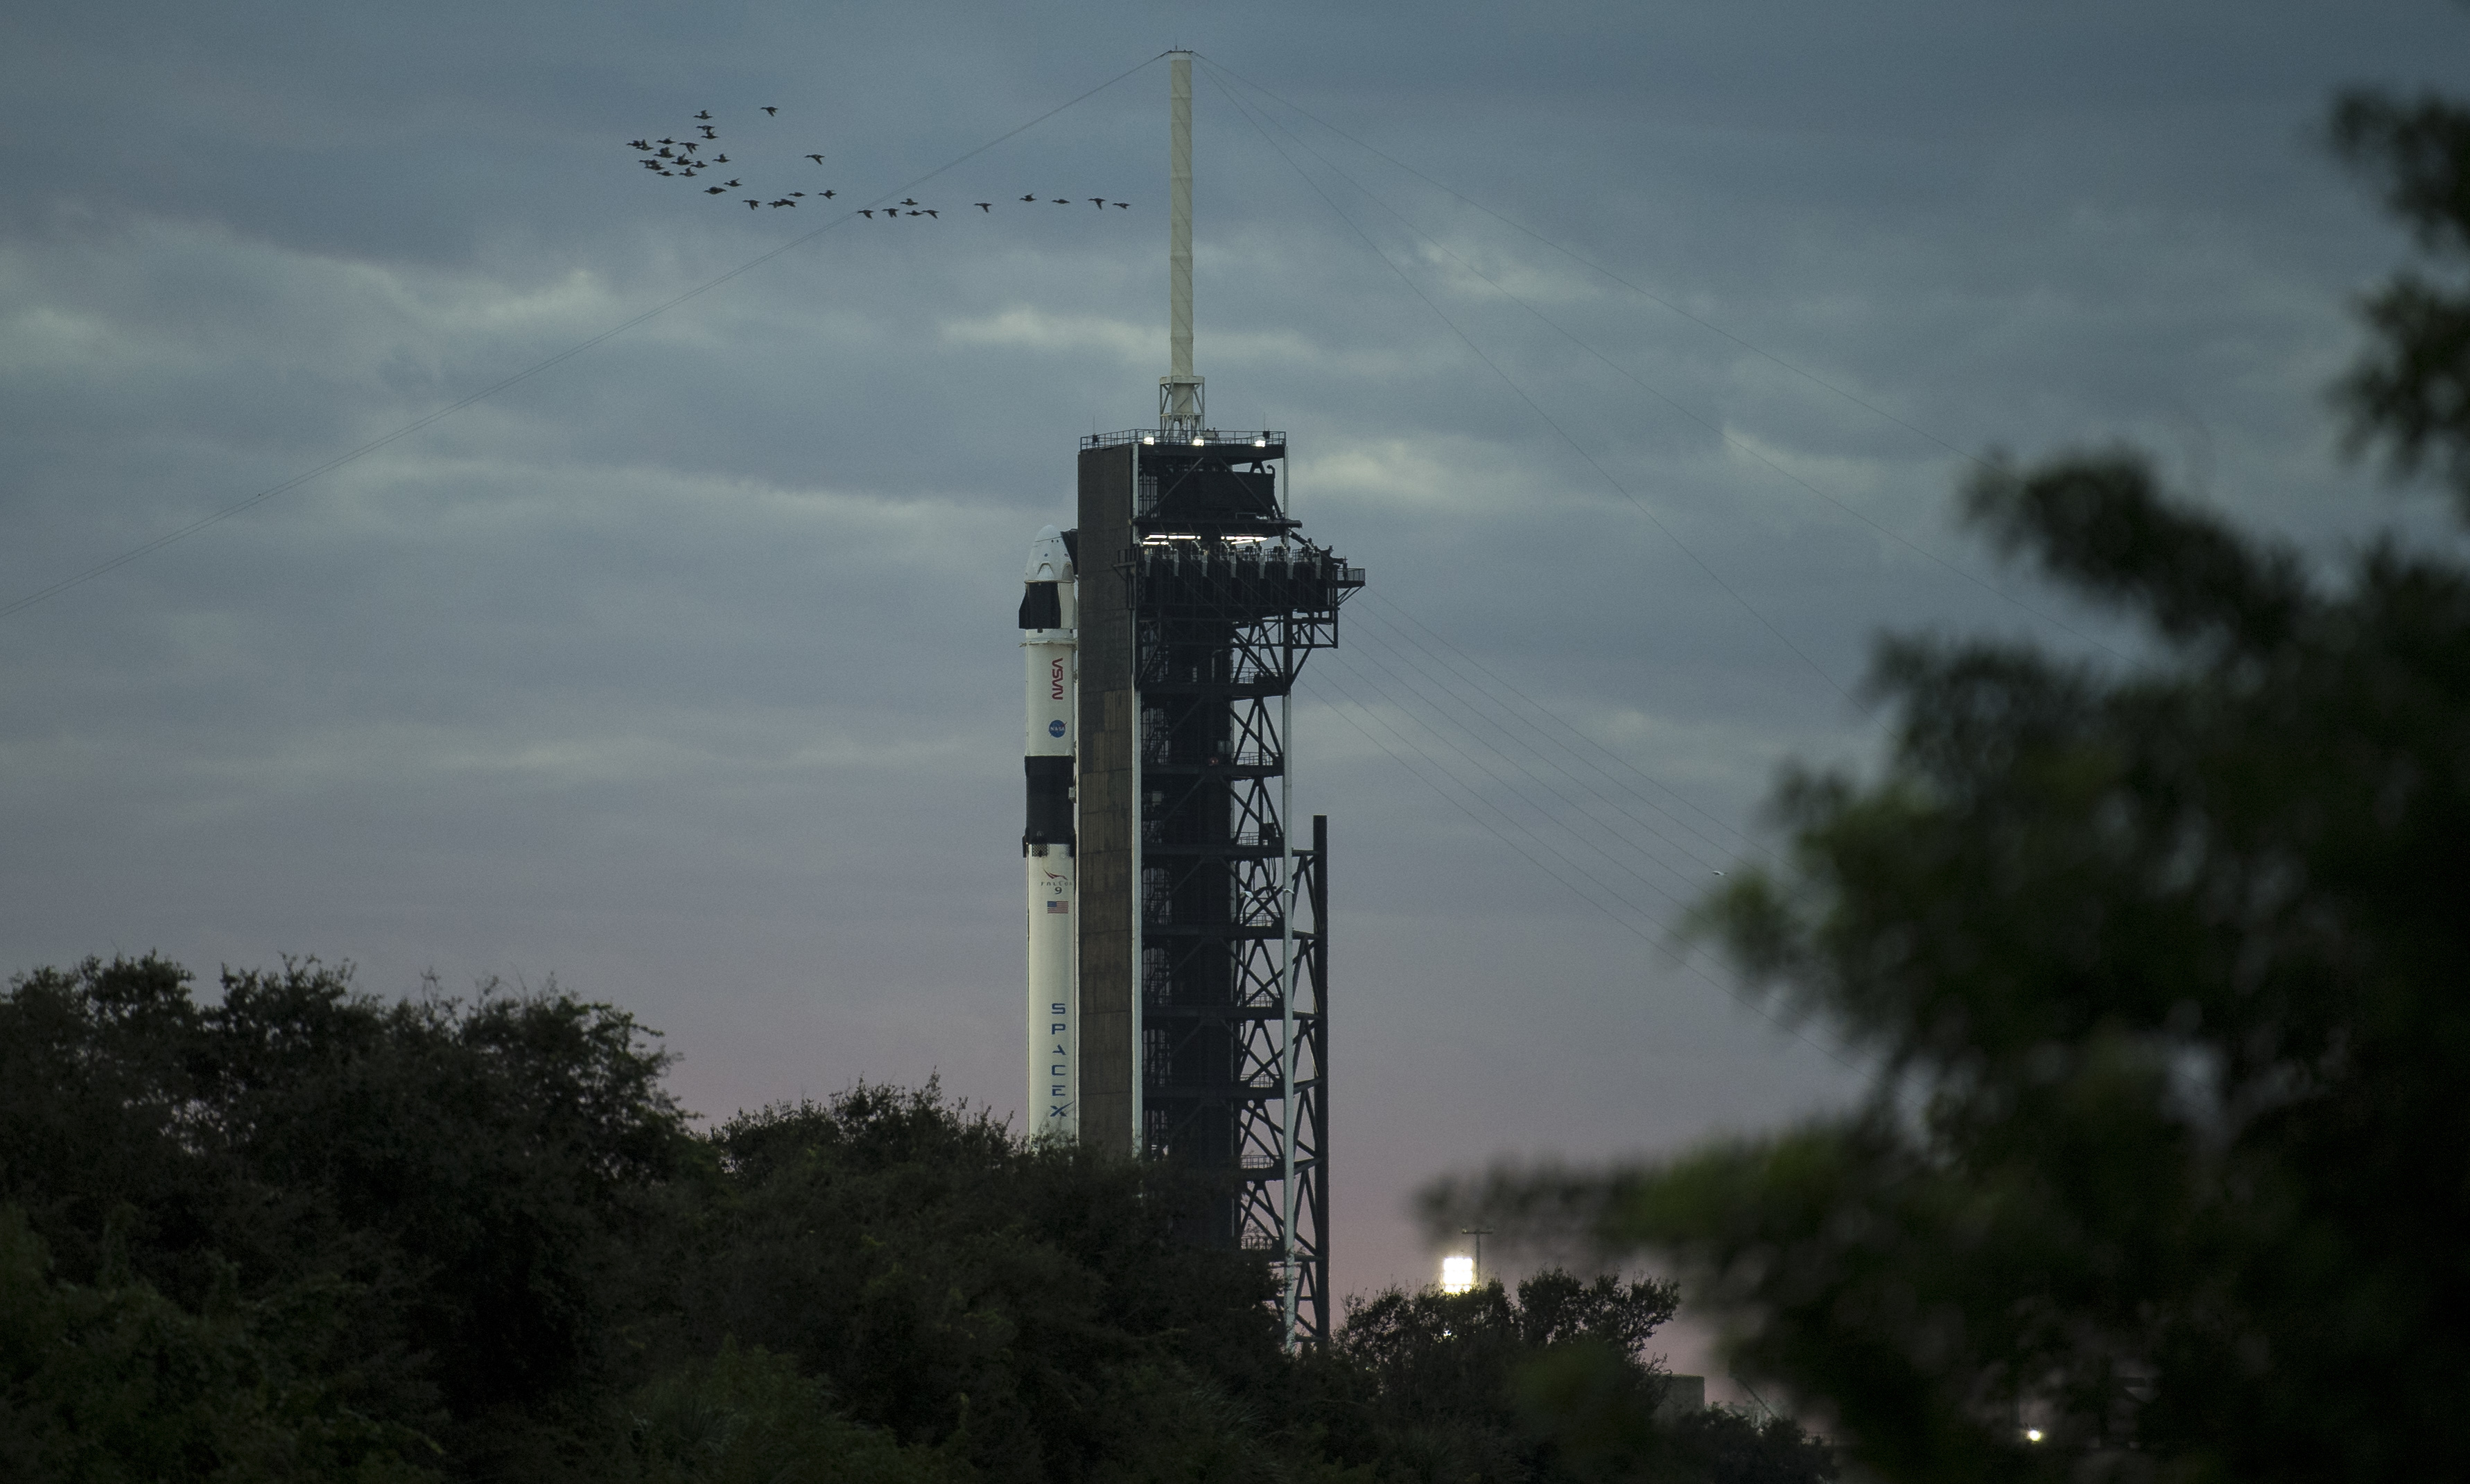 SpaceX resupply mission to ISS rescheduled for Sunday due to poor weather